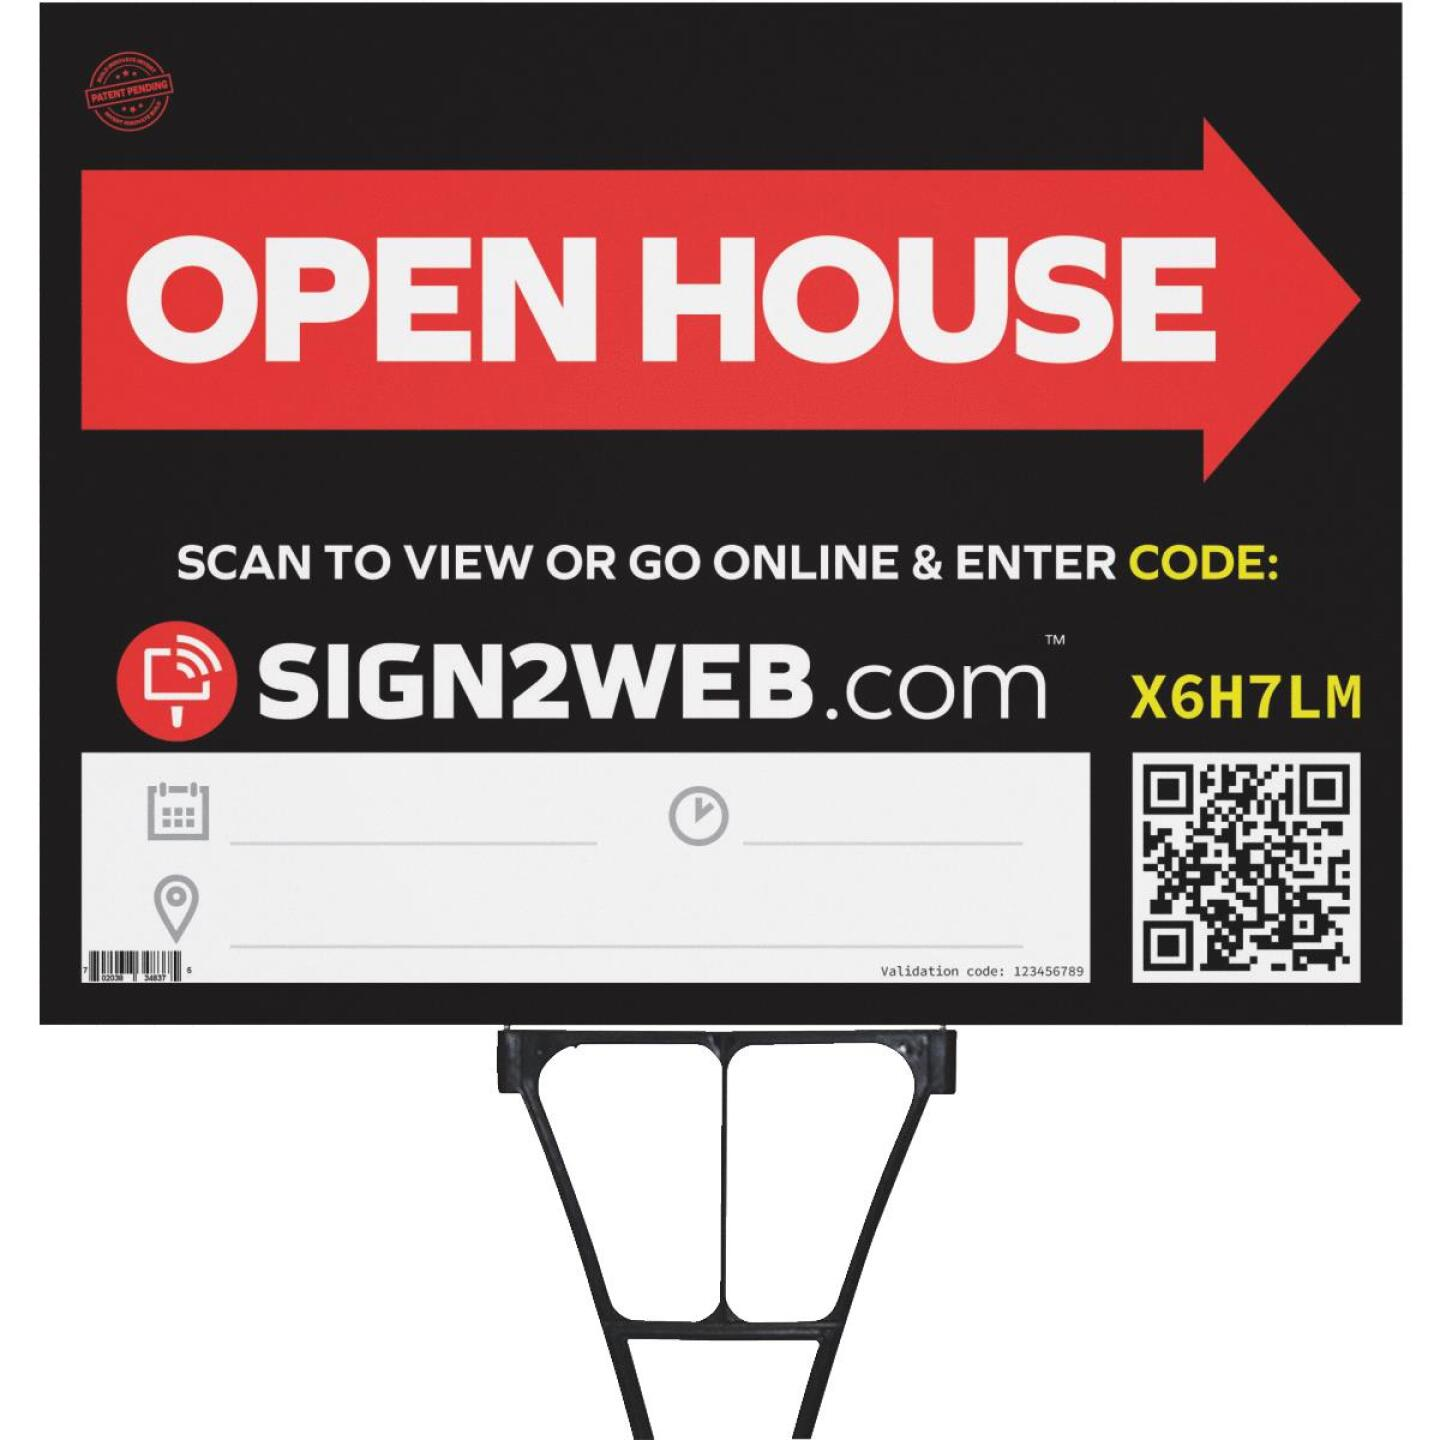 Sign2Web 18 In. x 24 In. Double Sided Open House Sign Image 1